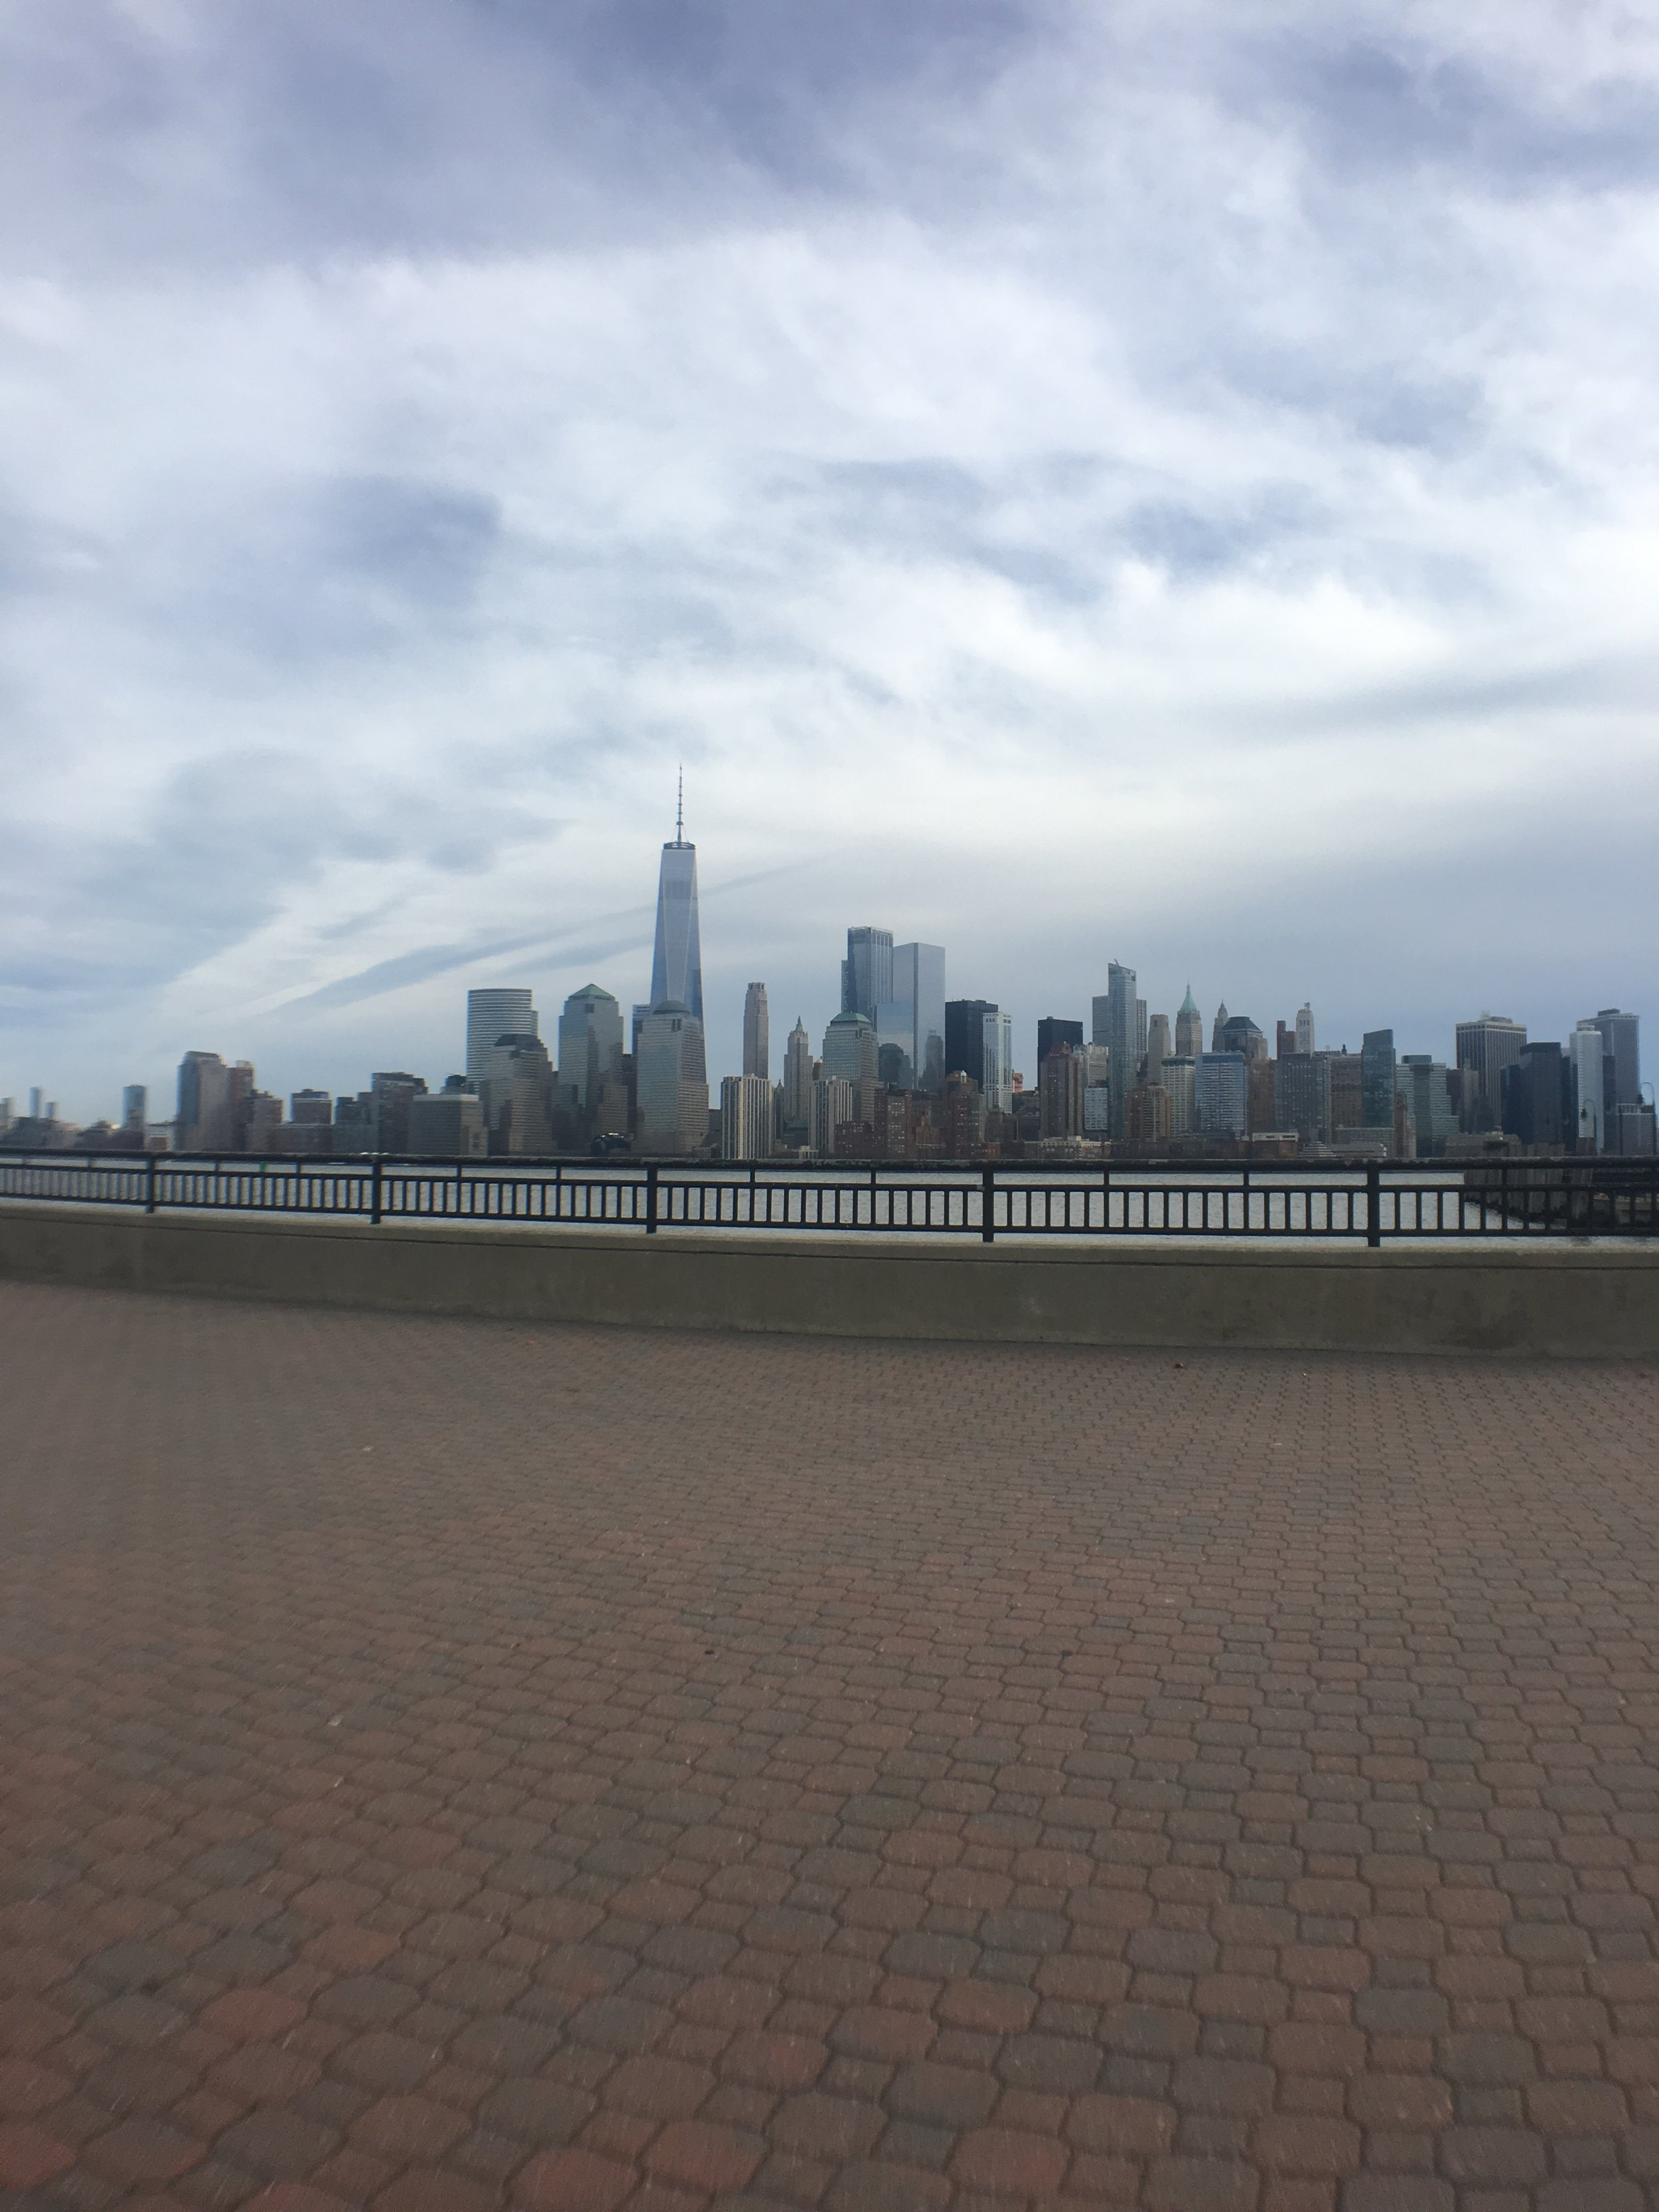 So many places to view the beautiful sky line view of Manhattan. This picture is taken at Liberty State Park in Jersey City. We got here by taking a Lyft!